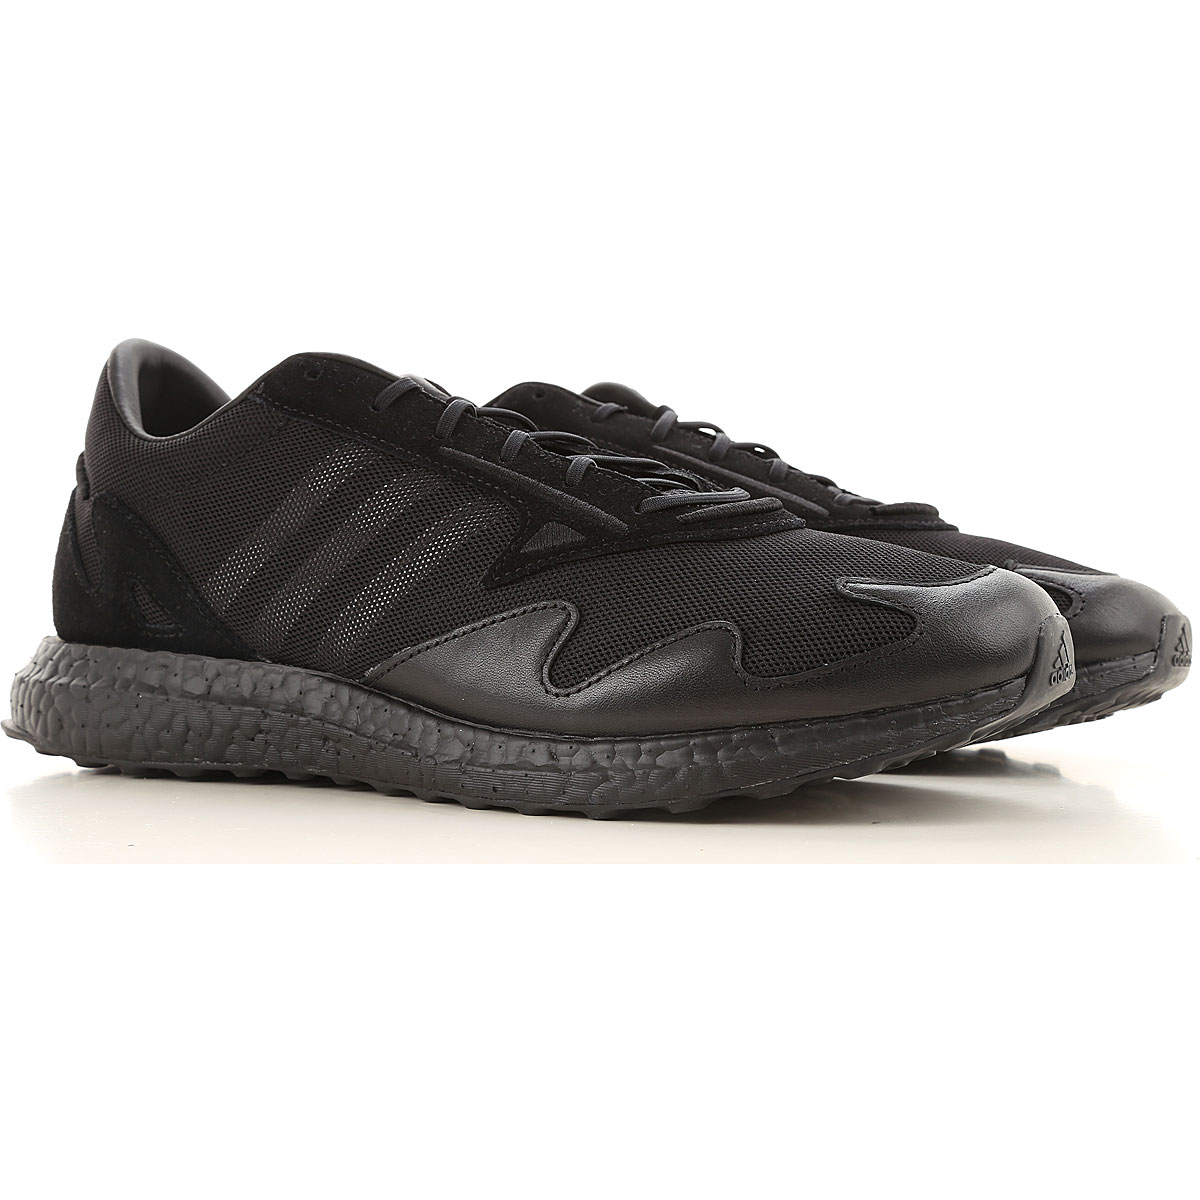 Y3 by Yohji Yamamoto Sneakers for Men On Sale, Black, Leather, 2019, 11 12 8 8.5 9 9.5